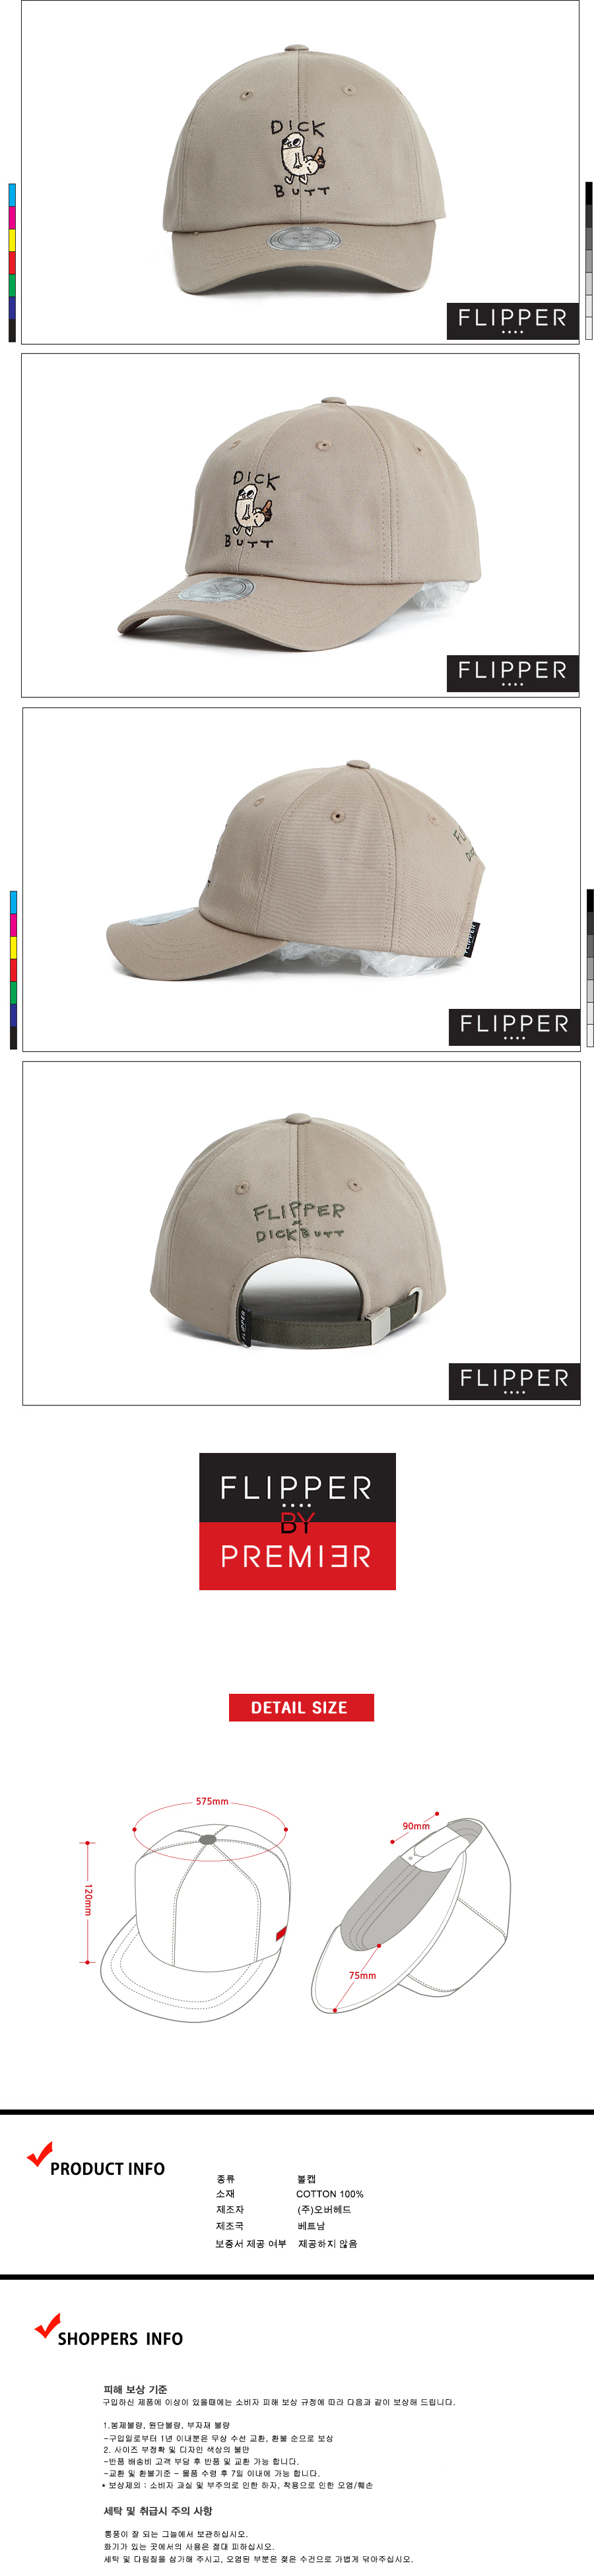 [ PREMIER ] [Premier] Flipper Ball Cap Ball Cap Dick And Butt Mud (FL065)